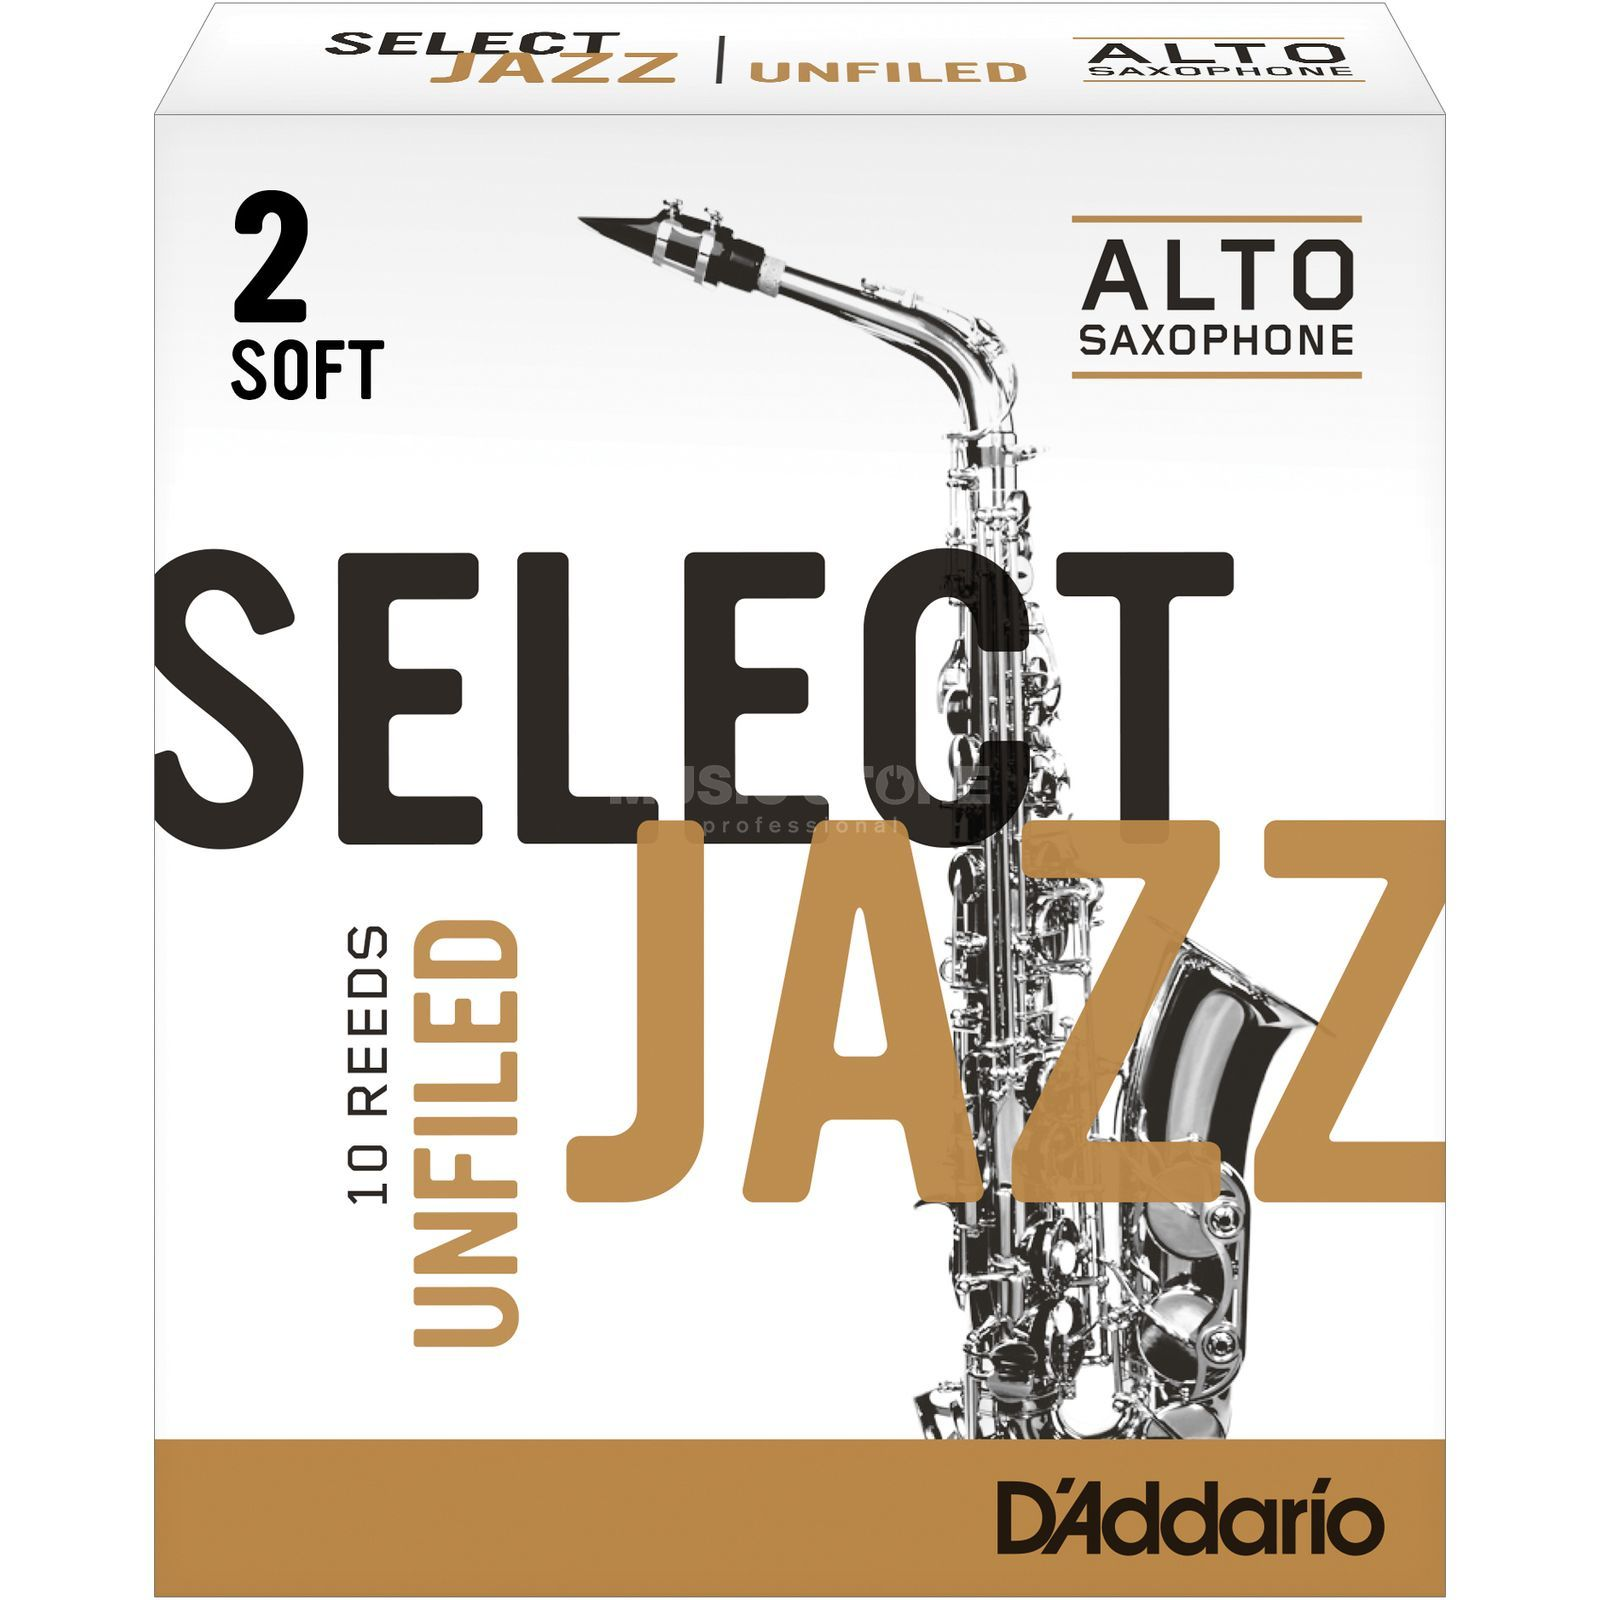 D'Addario Woodwinds Alto Sax Reeds 2S Unfiled Box of 10 Immagine prodotto